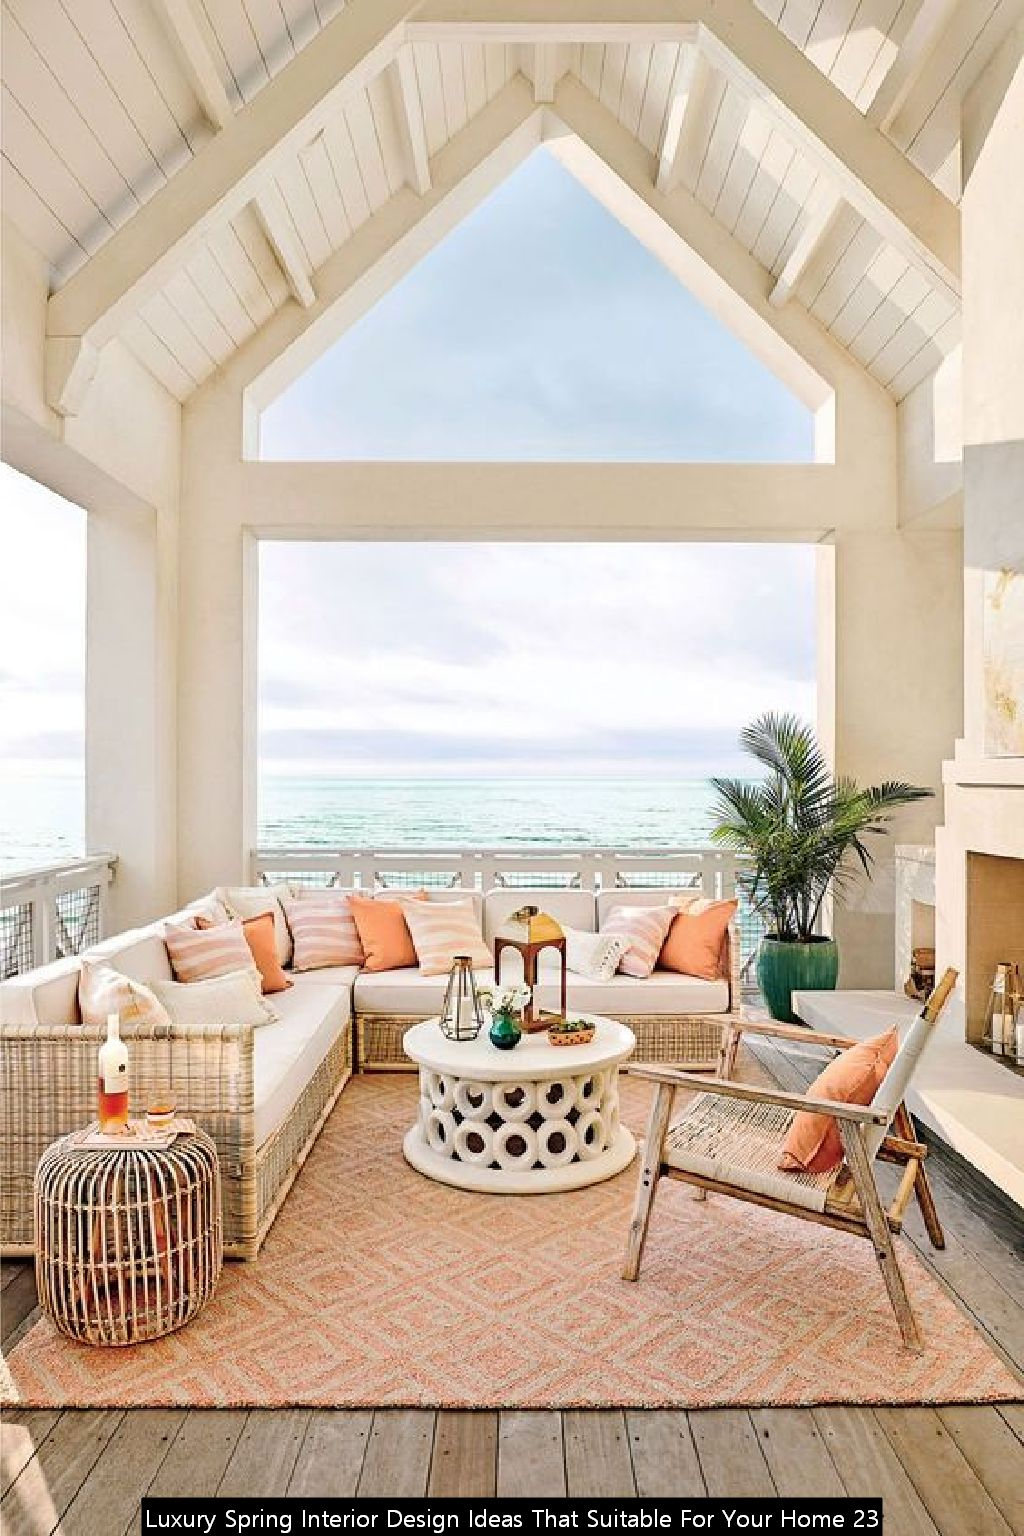 Luxury Spring Interior Design Ideas That Suitable For Your Home 23